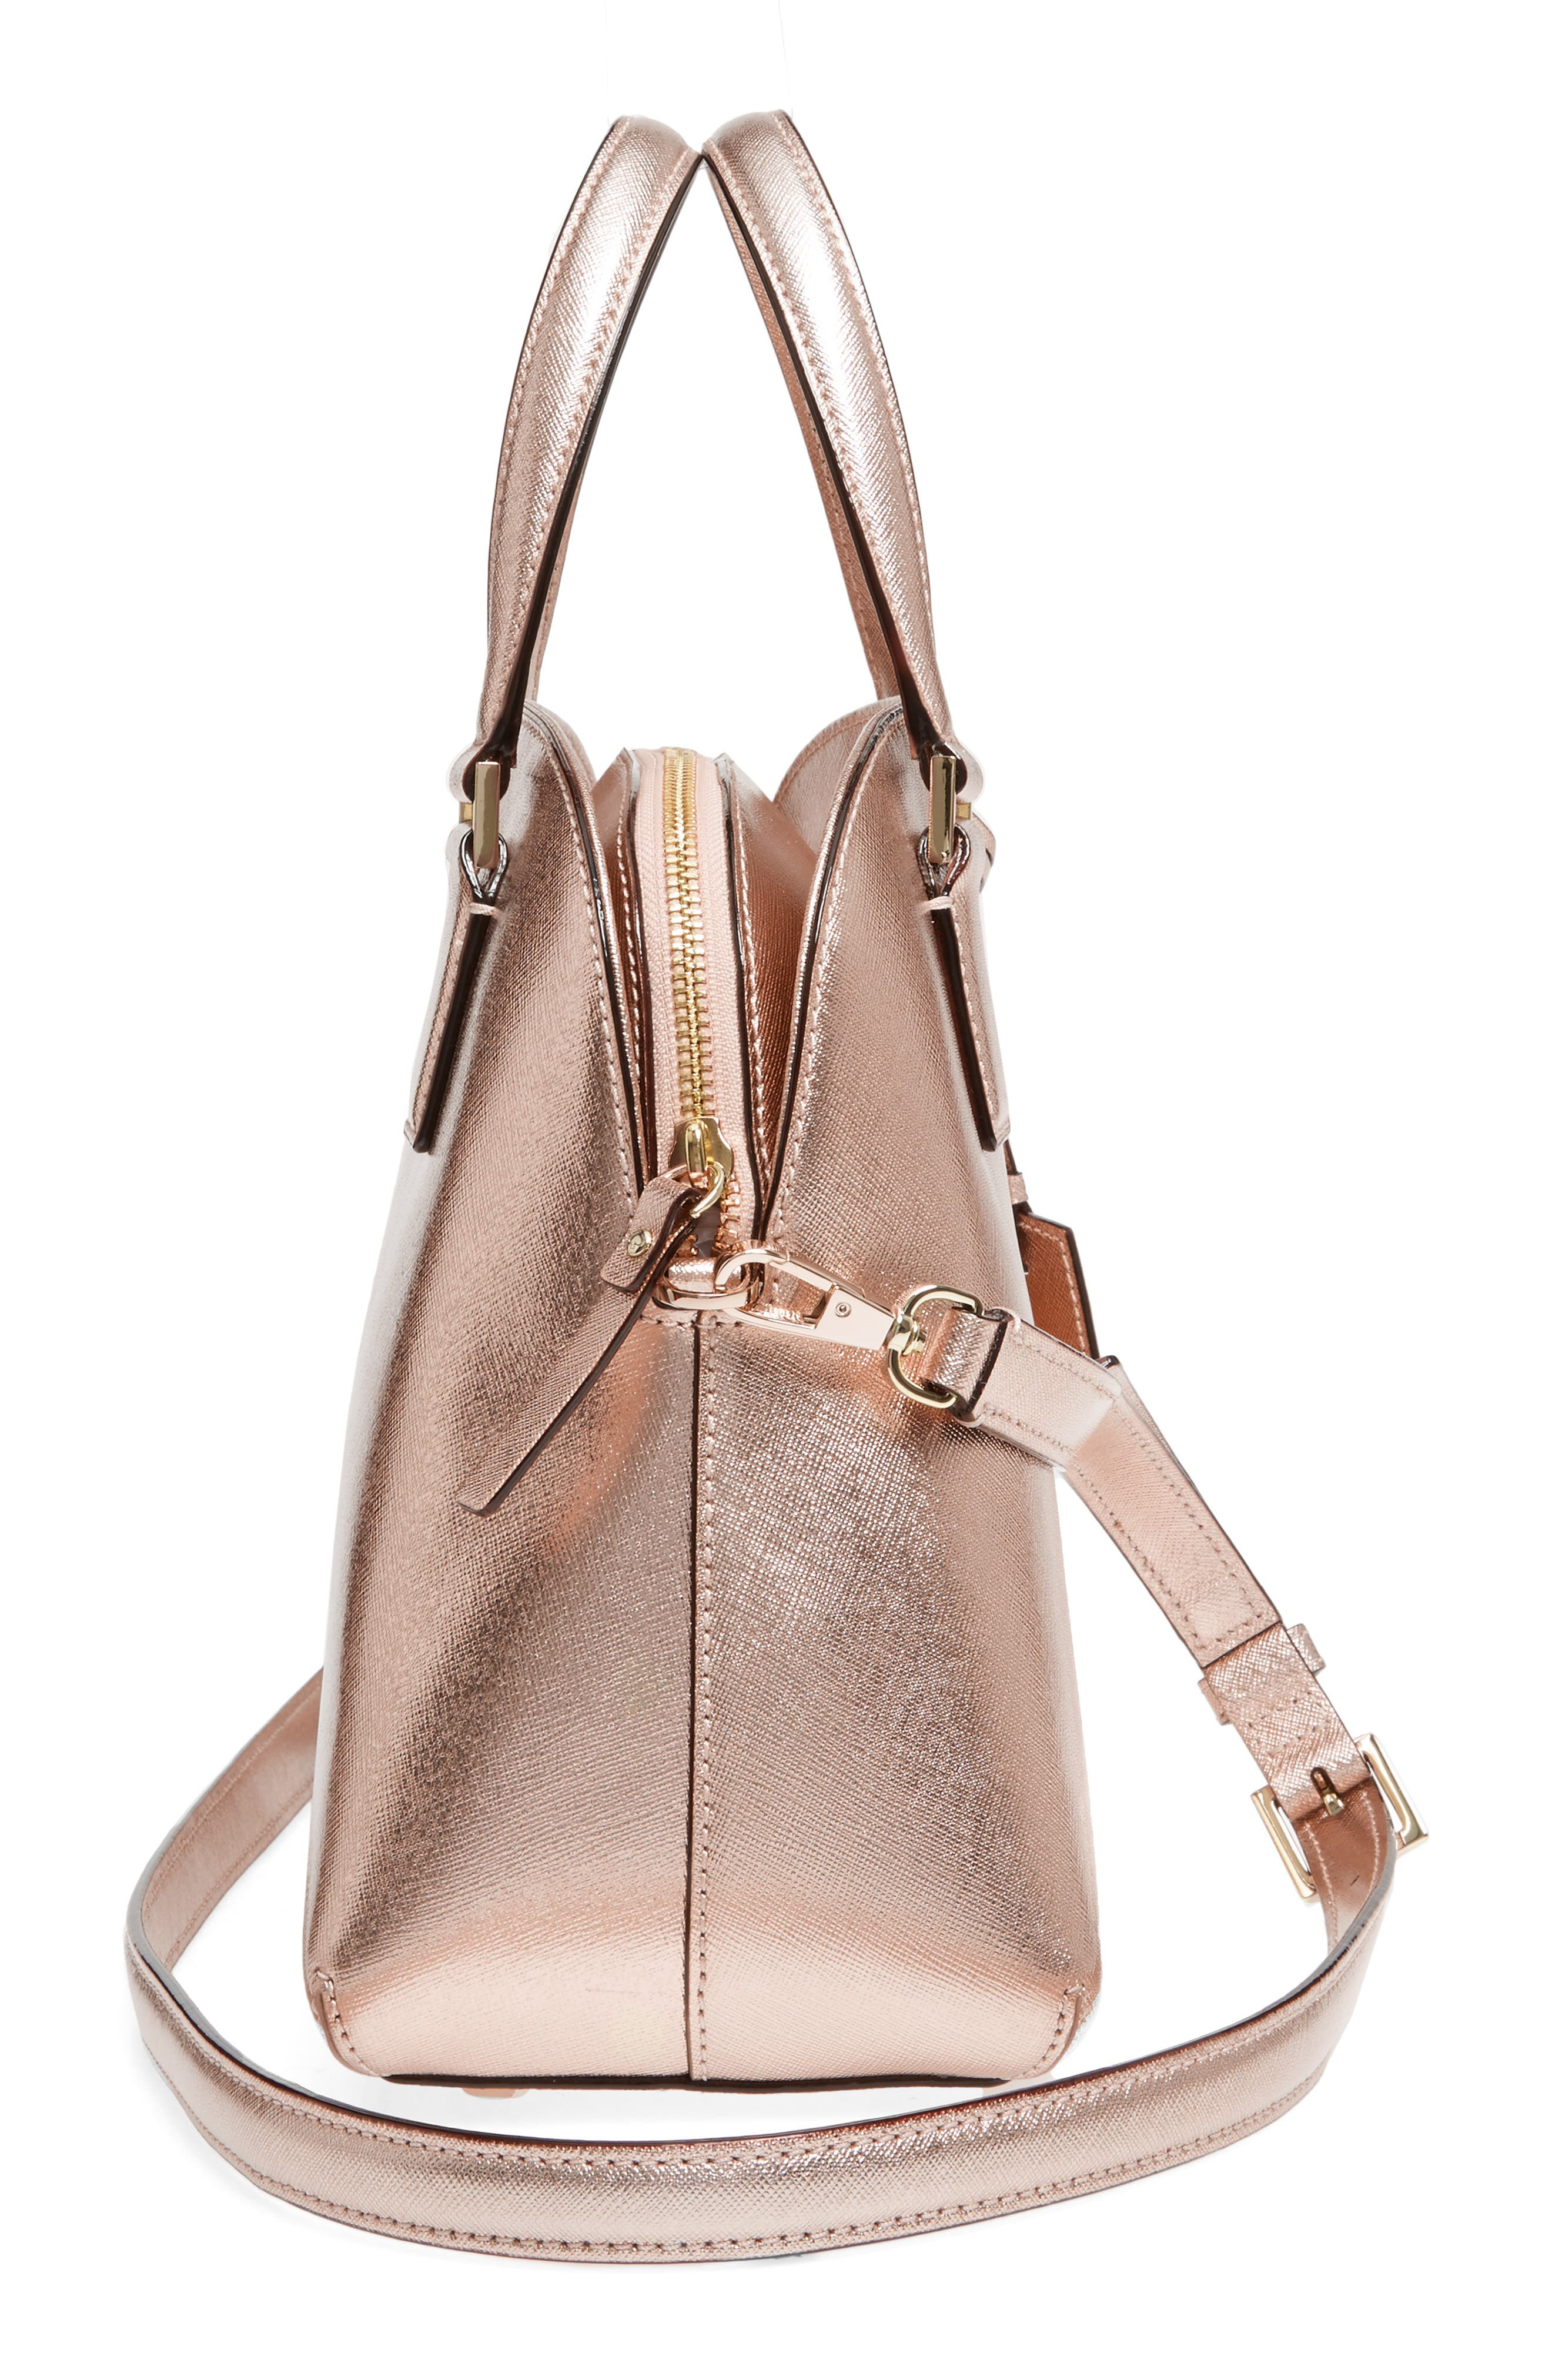 cameron street - lottie leather satchel,                             Alternate thumbnail 5, color,                             Rose Gold